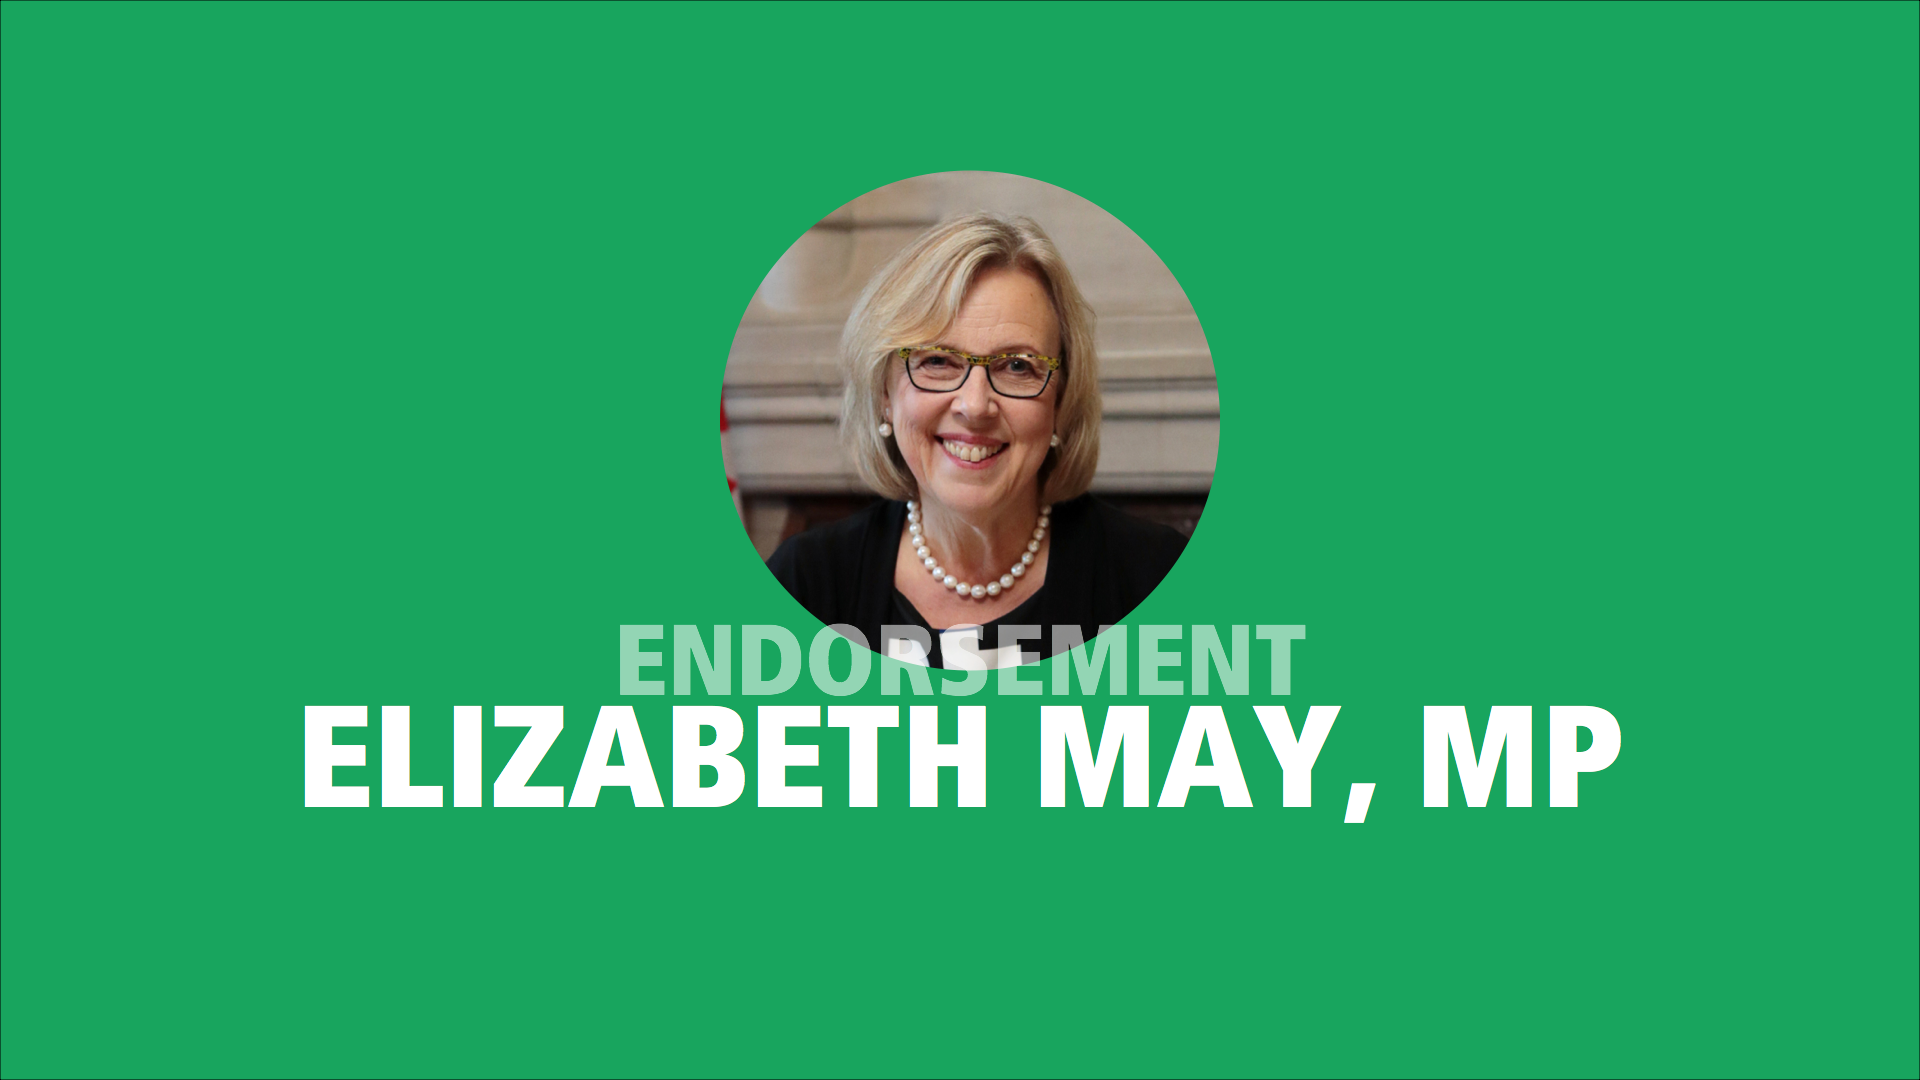 Elizabeth May, MP endorses Adam Olsen